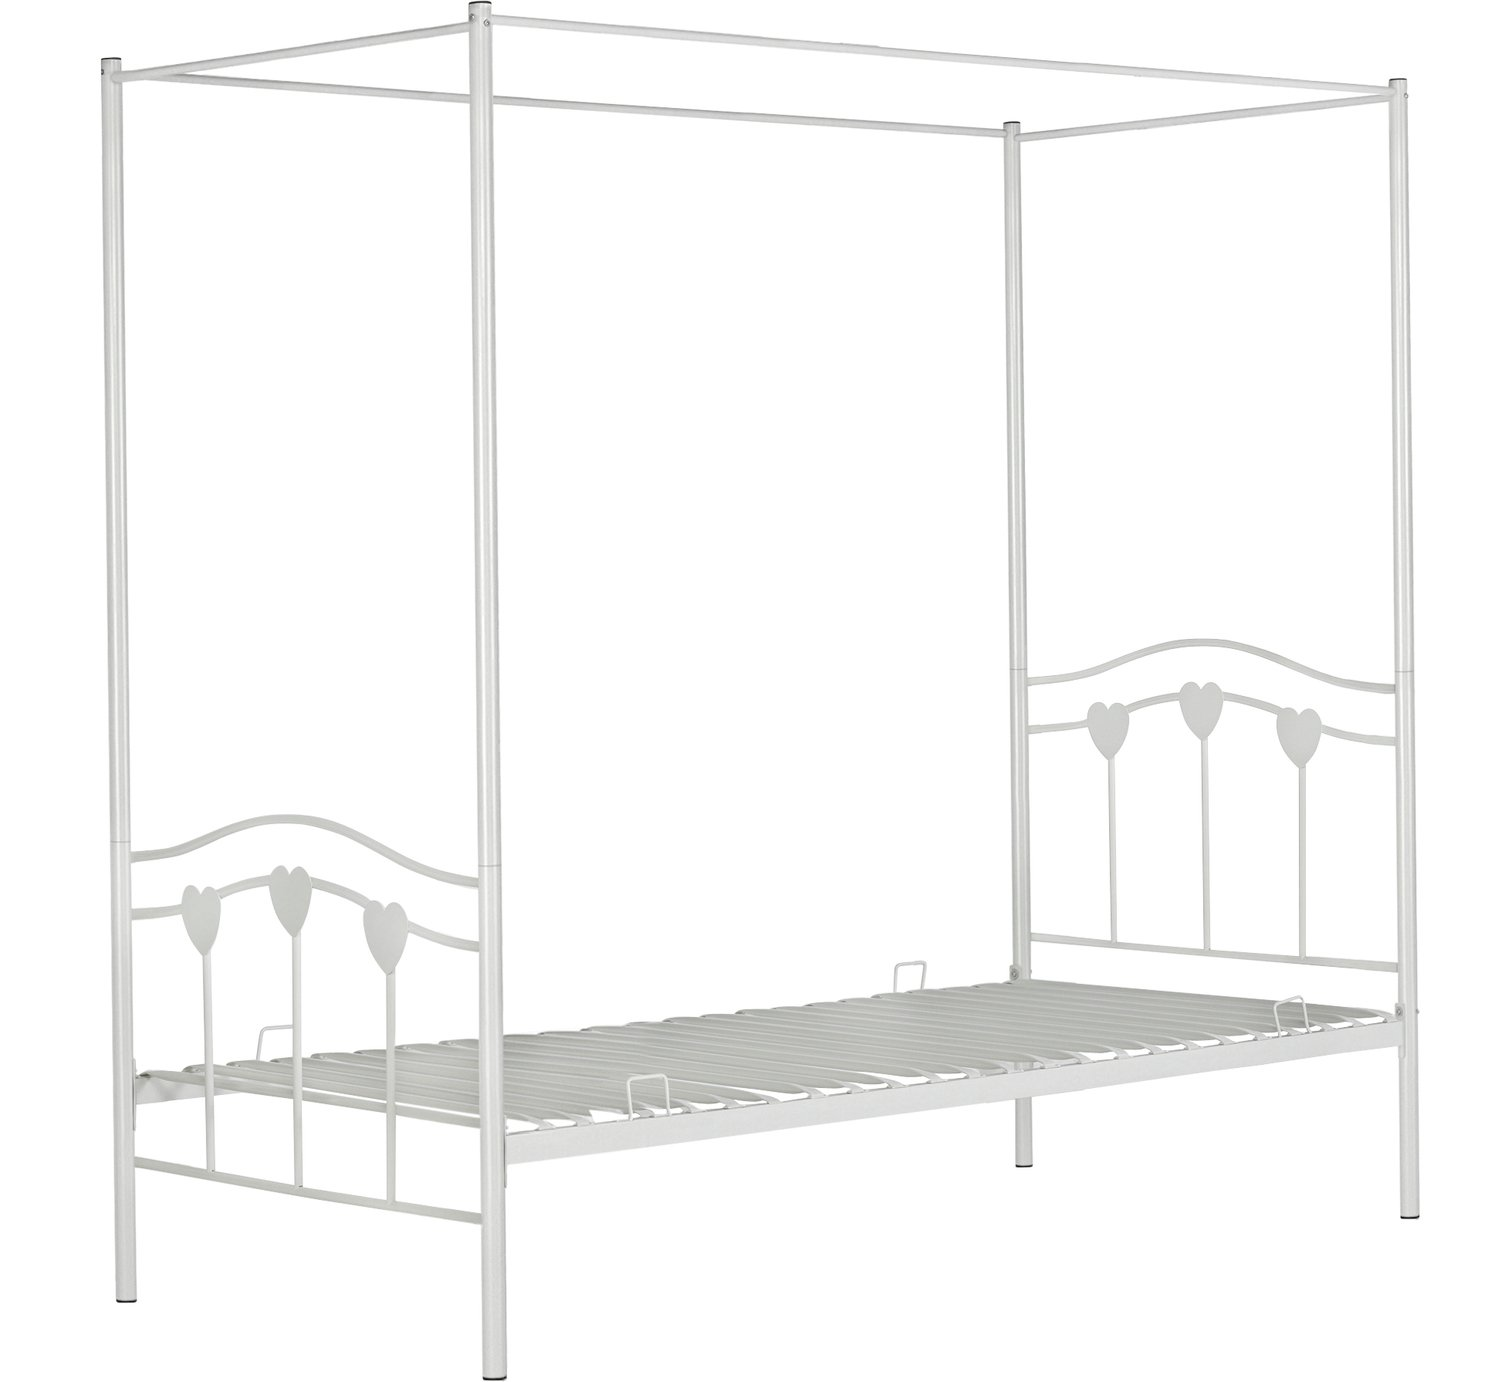 Argos Home Hearts White Single 4 Poster Bed Frame